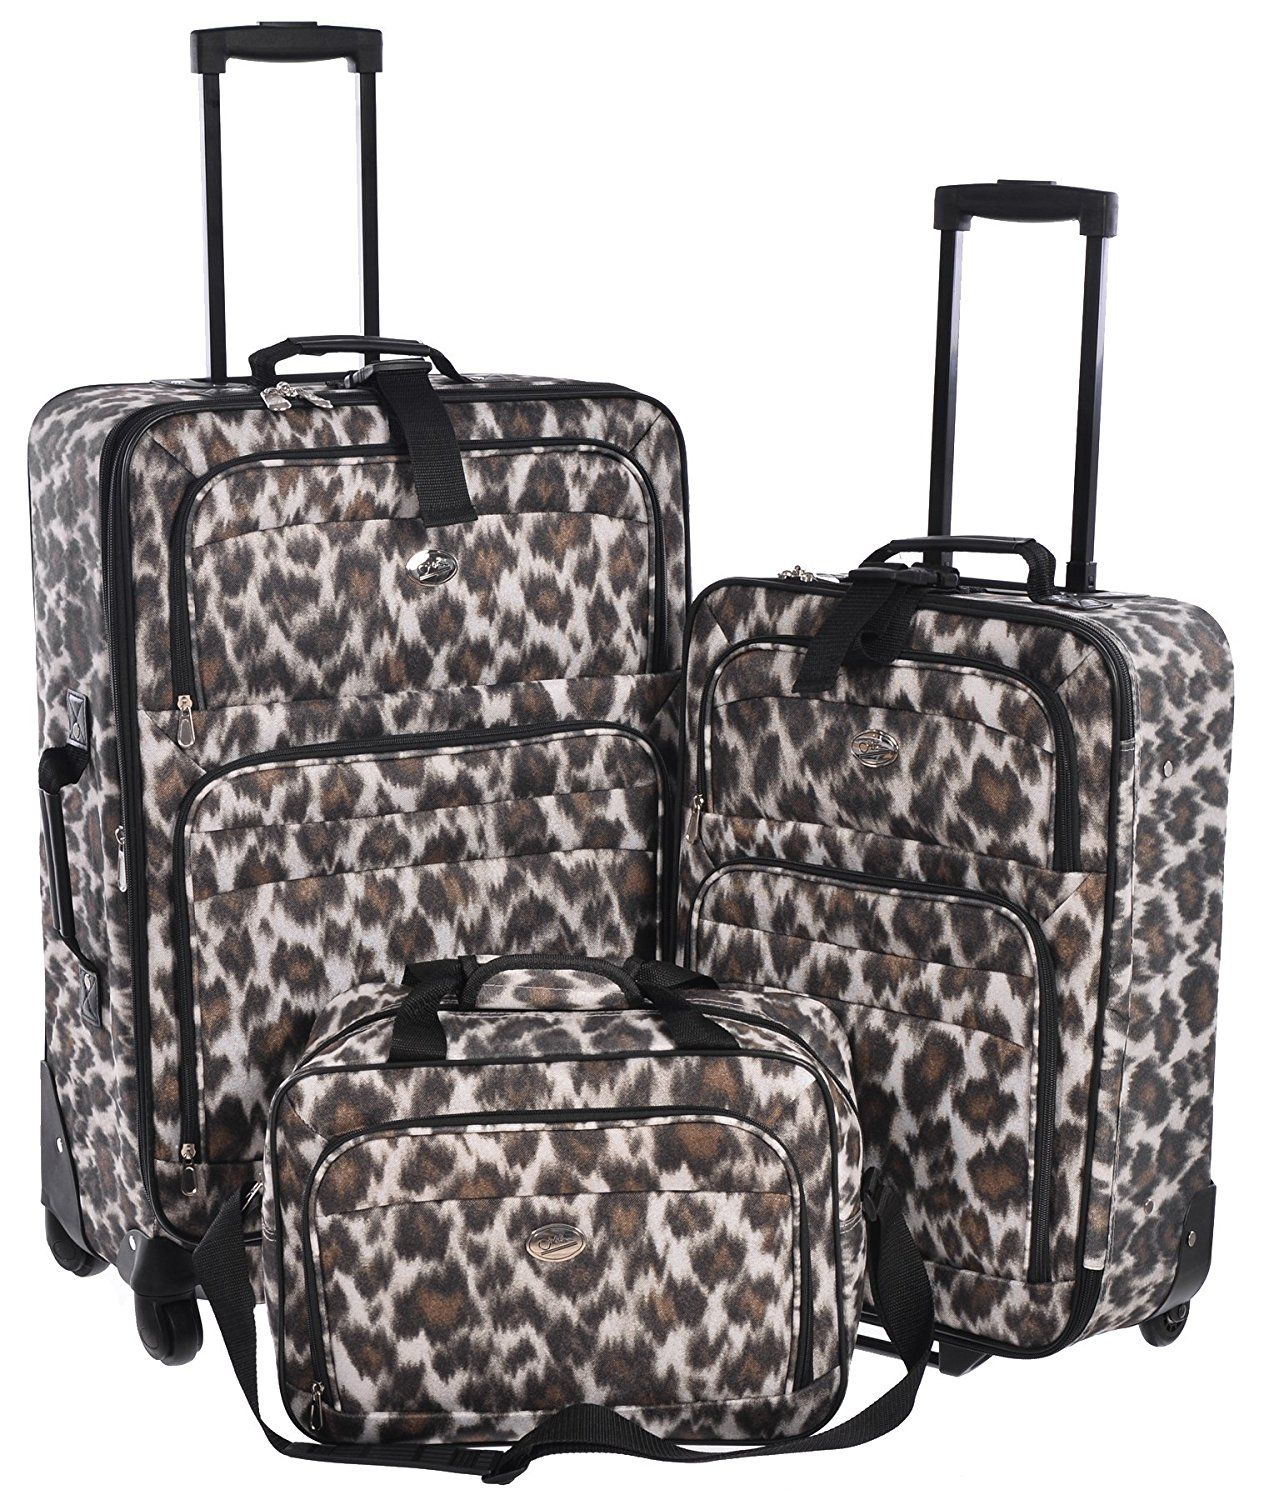 HiPack Multi-use Rolling Trolley Overnight Bag-TSA Approved Carryon Black